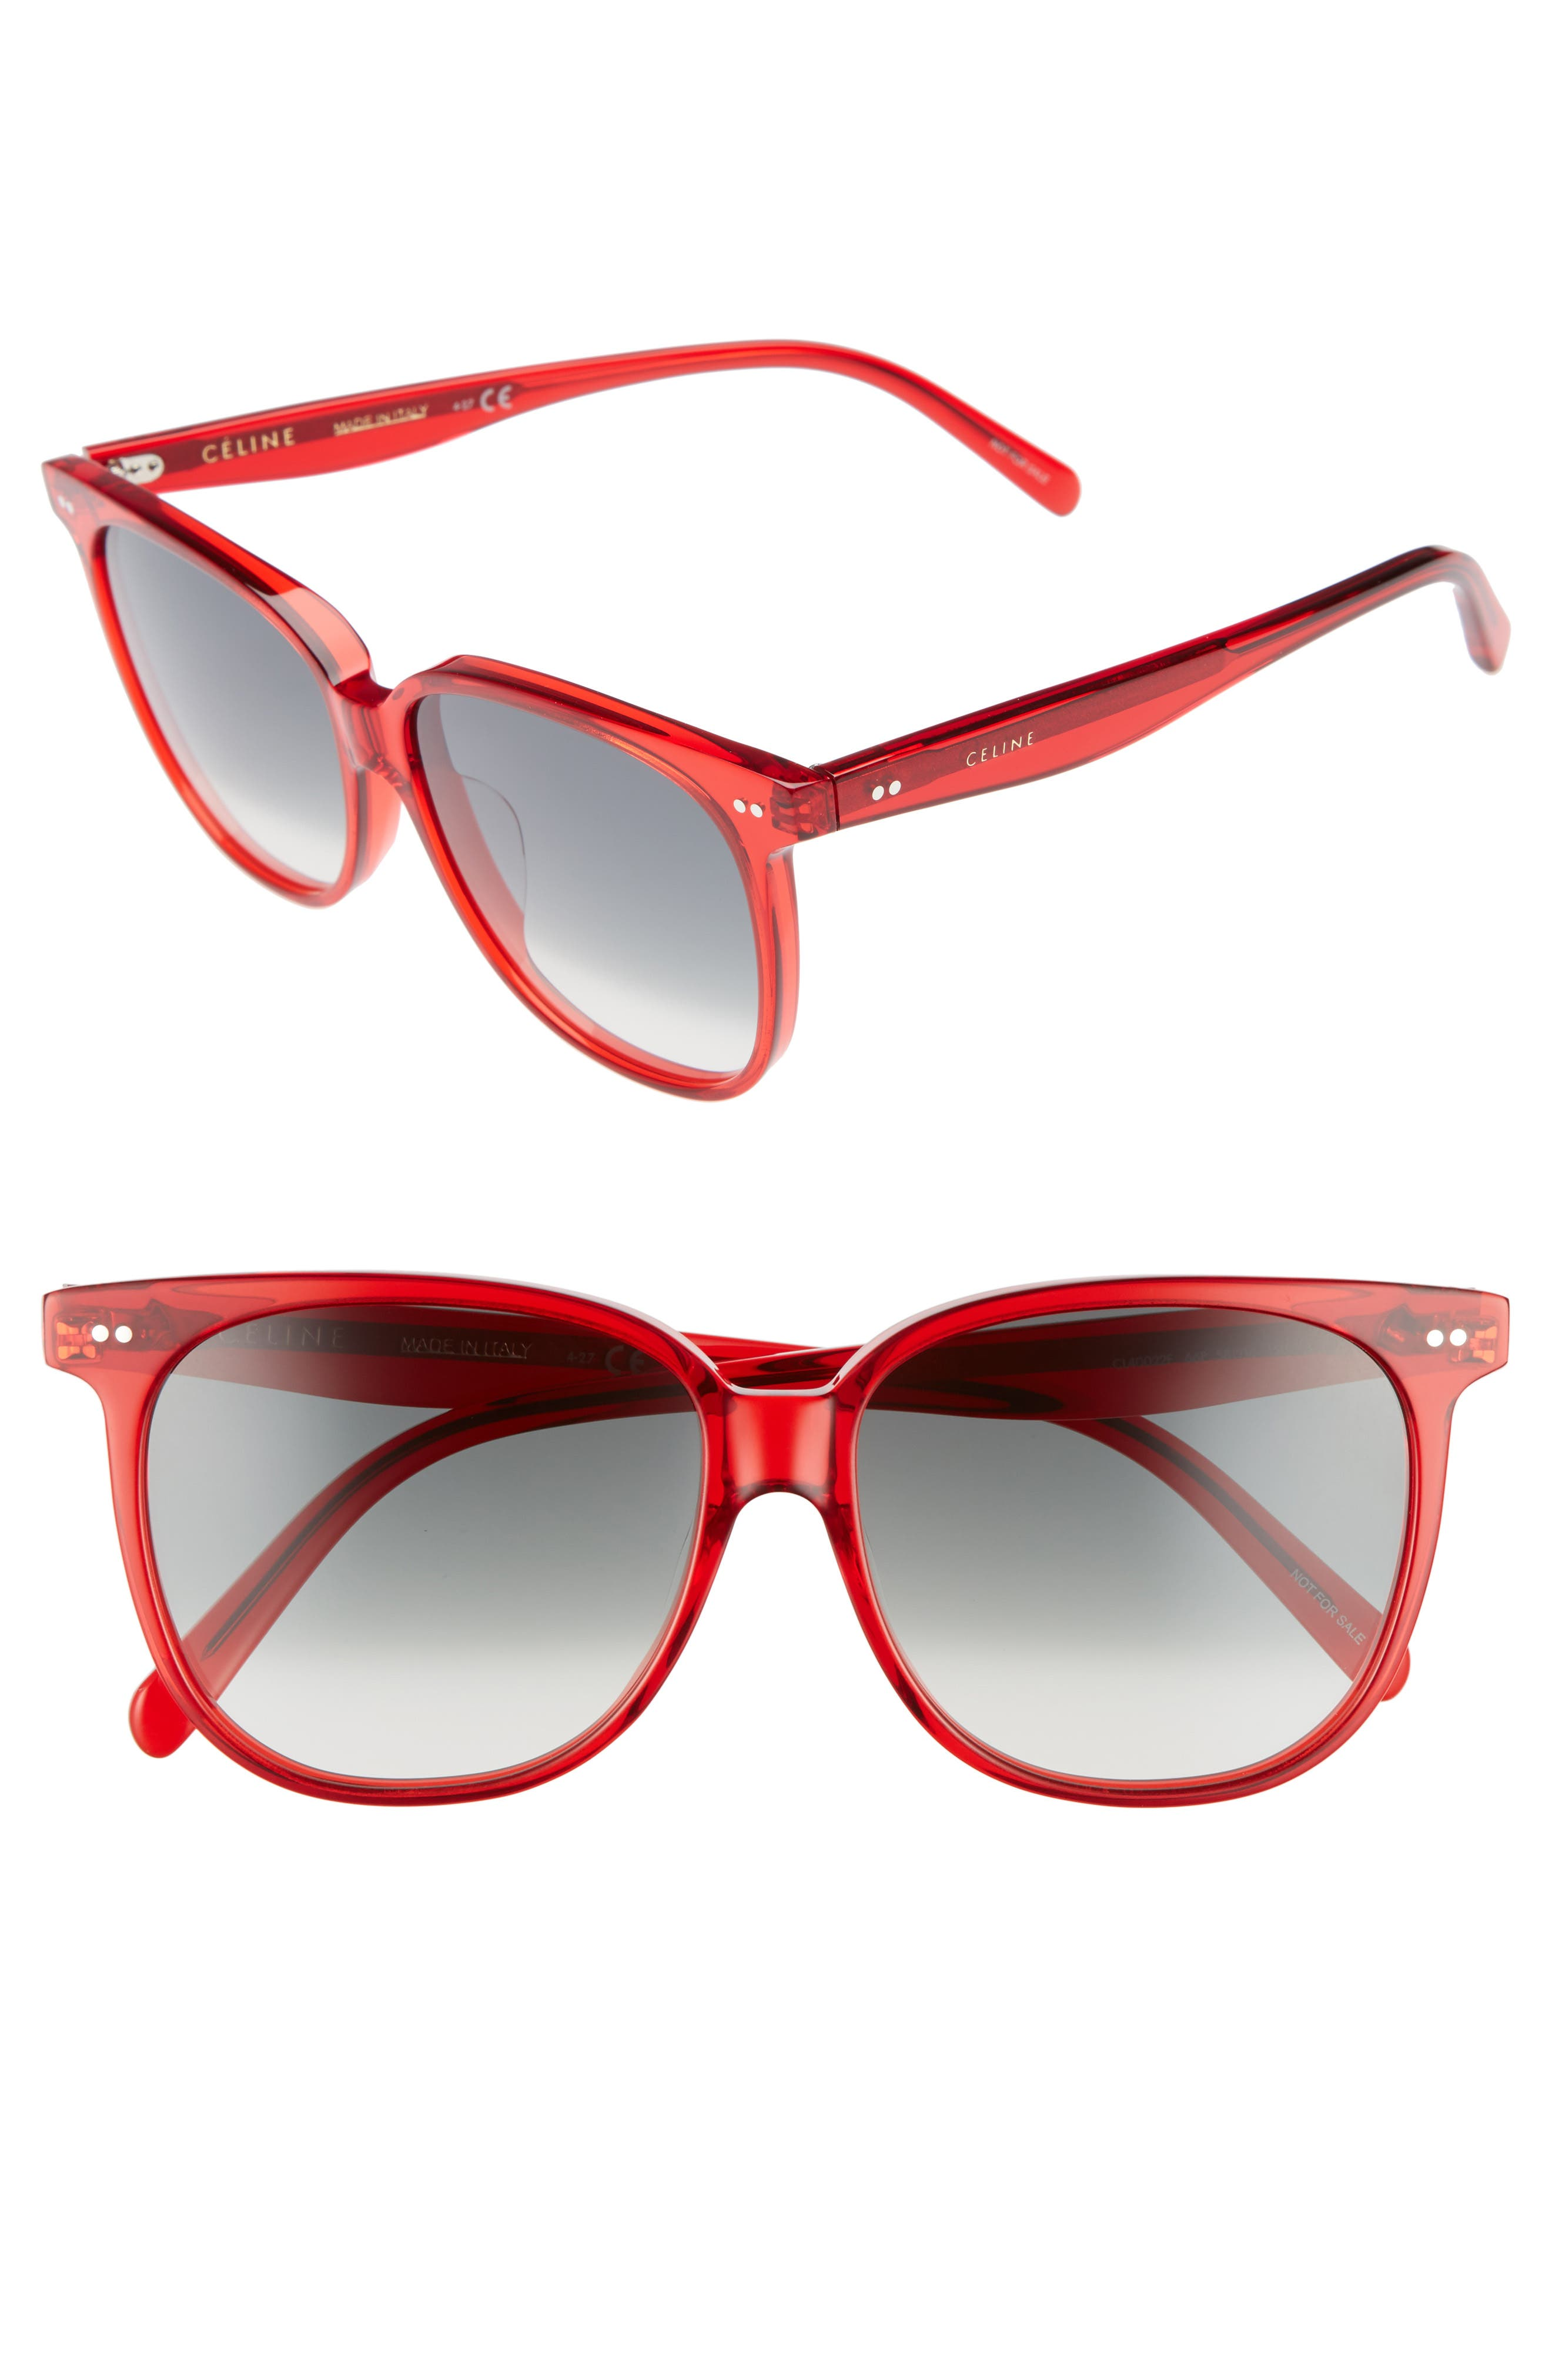 Special Fit 58mm Square Sunglasses,                         Main,                         color, Red/ Green